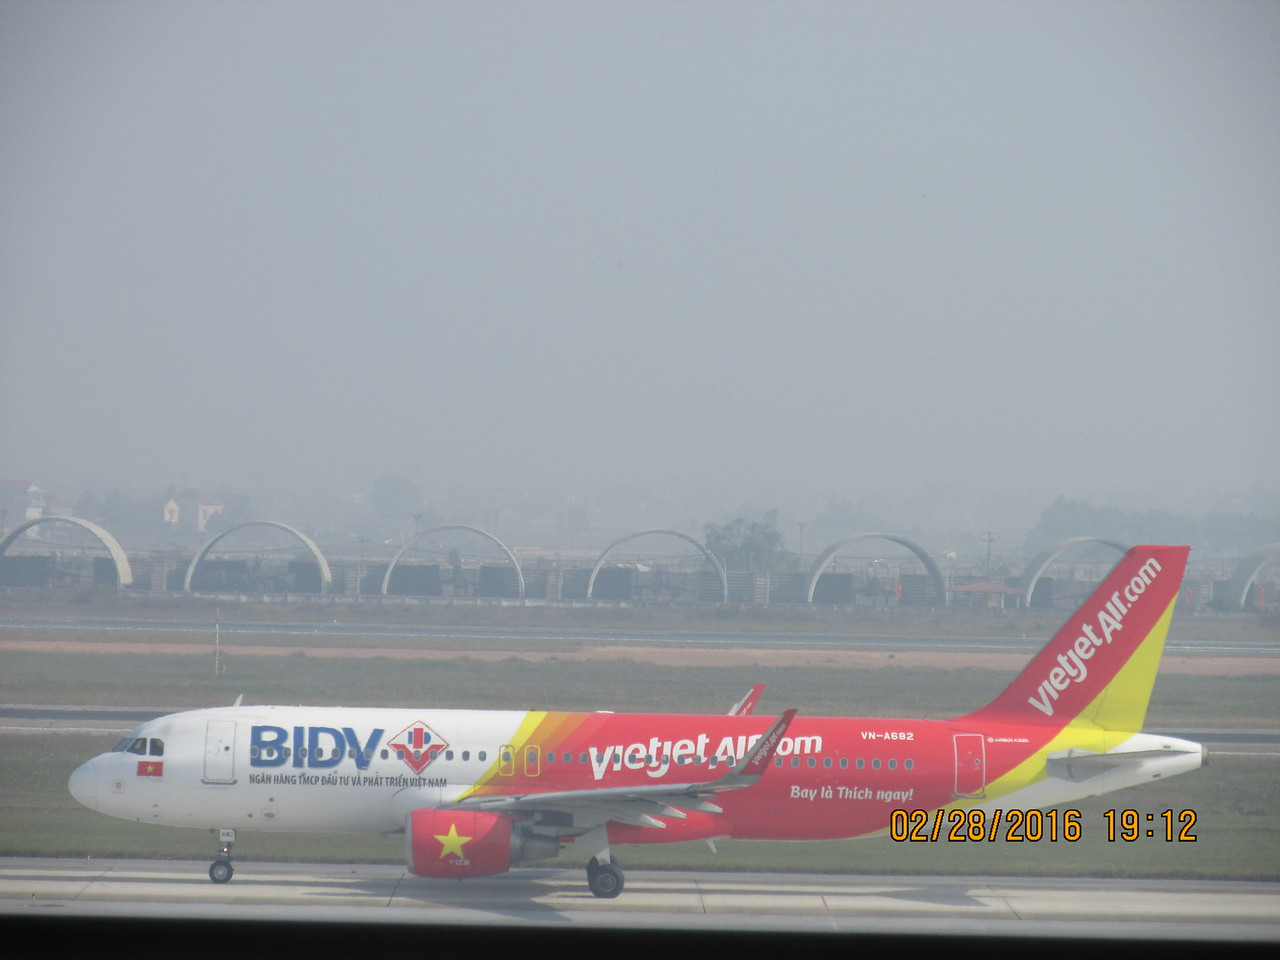 0100 - Vietjet Air Airplane from Vietnam at Hanoi Airport - Hanoi Vietnam - Date Correct but Time on Pic is Wrong